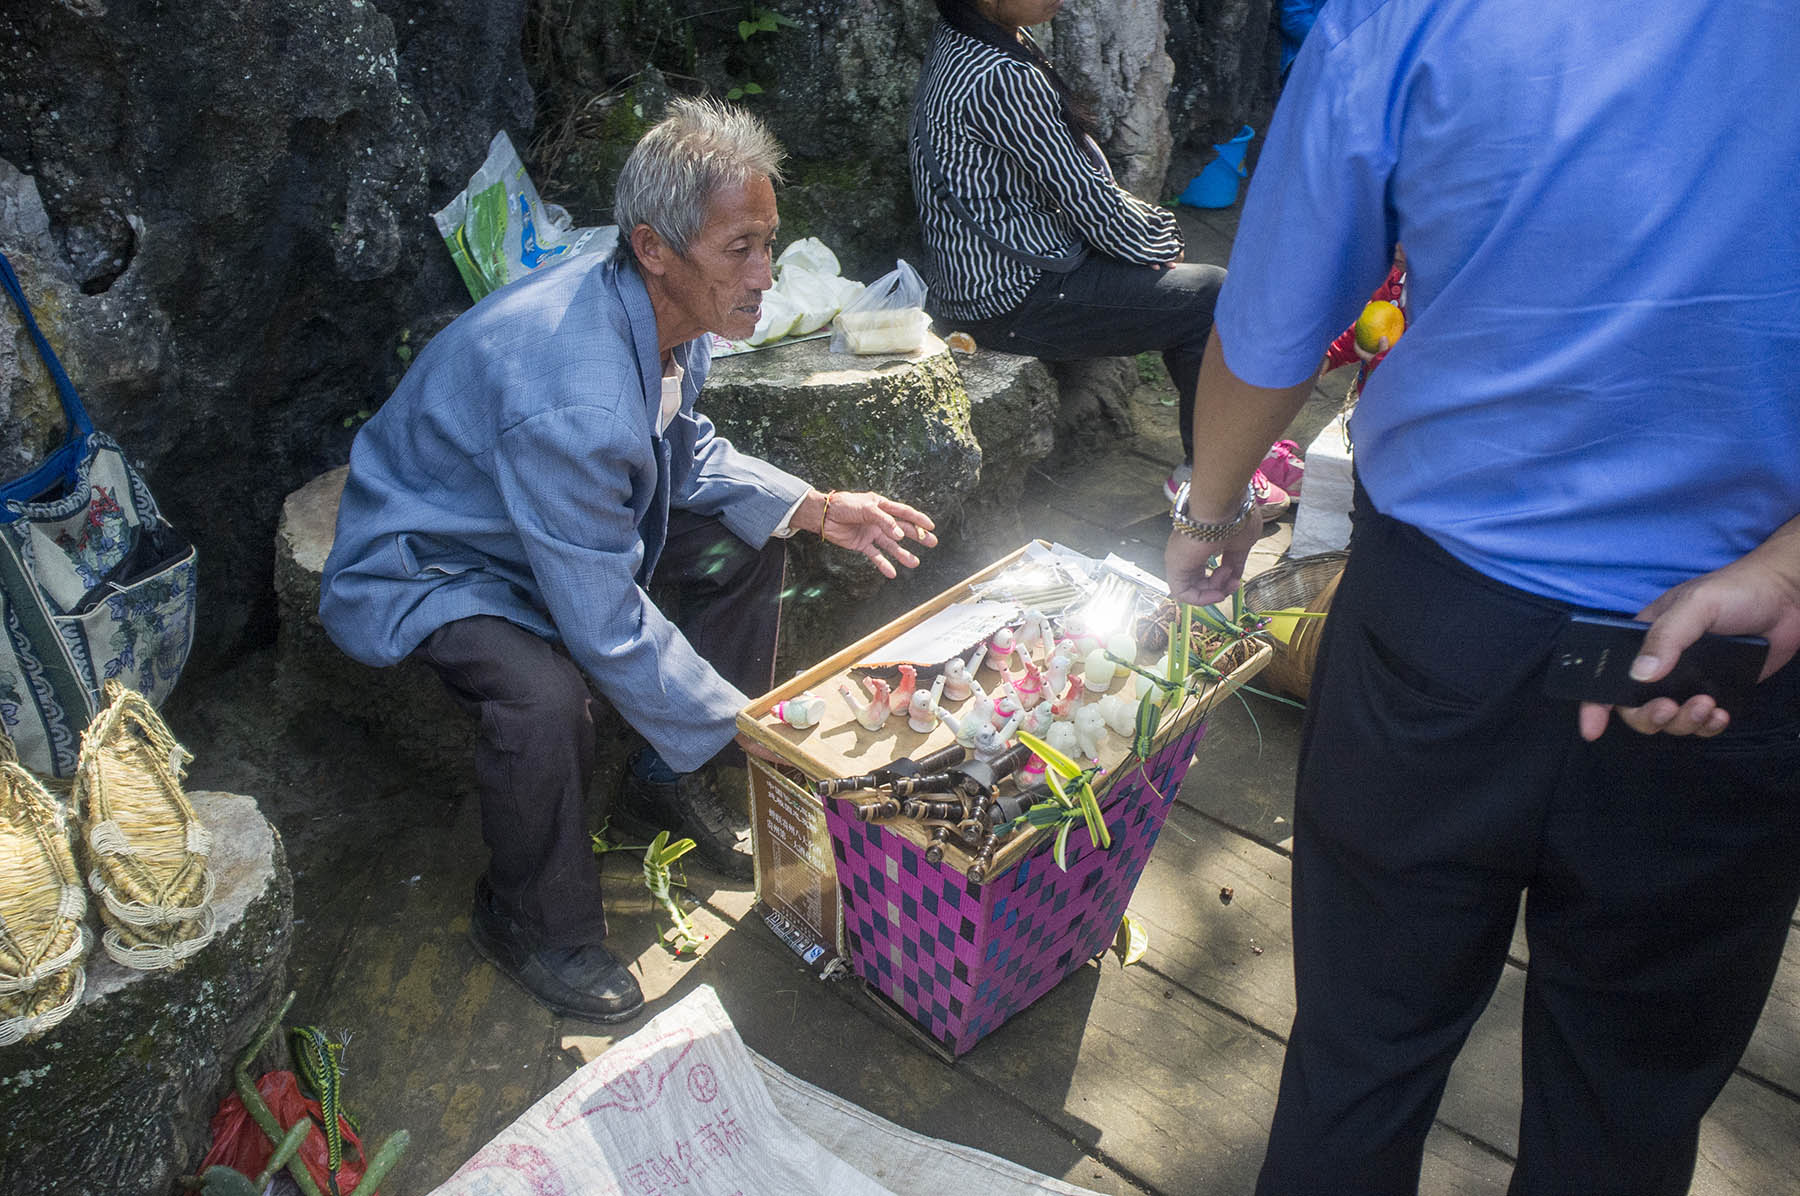 An old man is caught hiding illegal souvenirs under a plastic cover, he is hiding the most valuable things inside the basket.